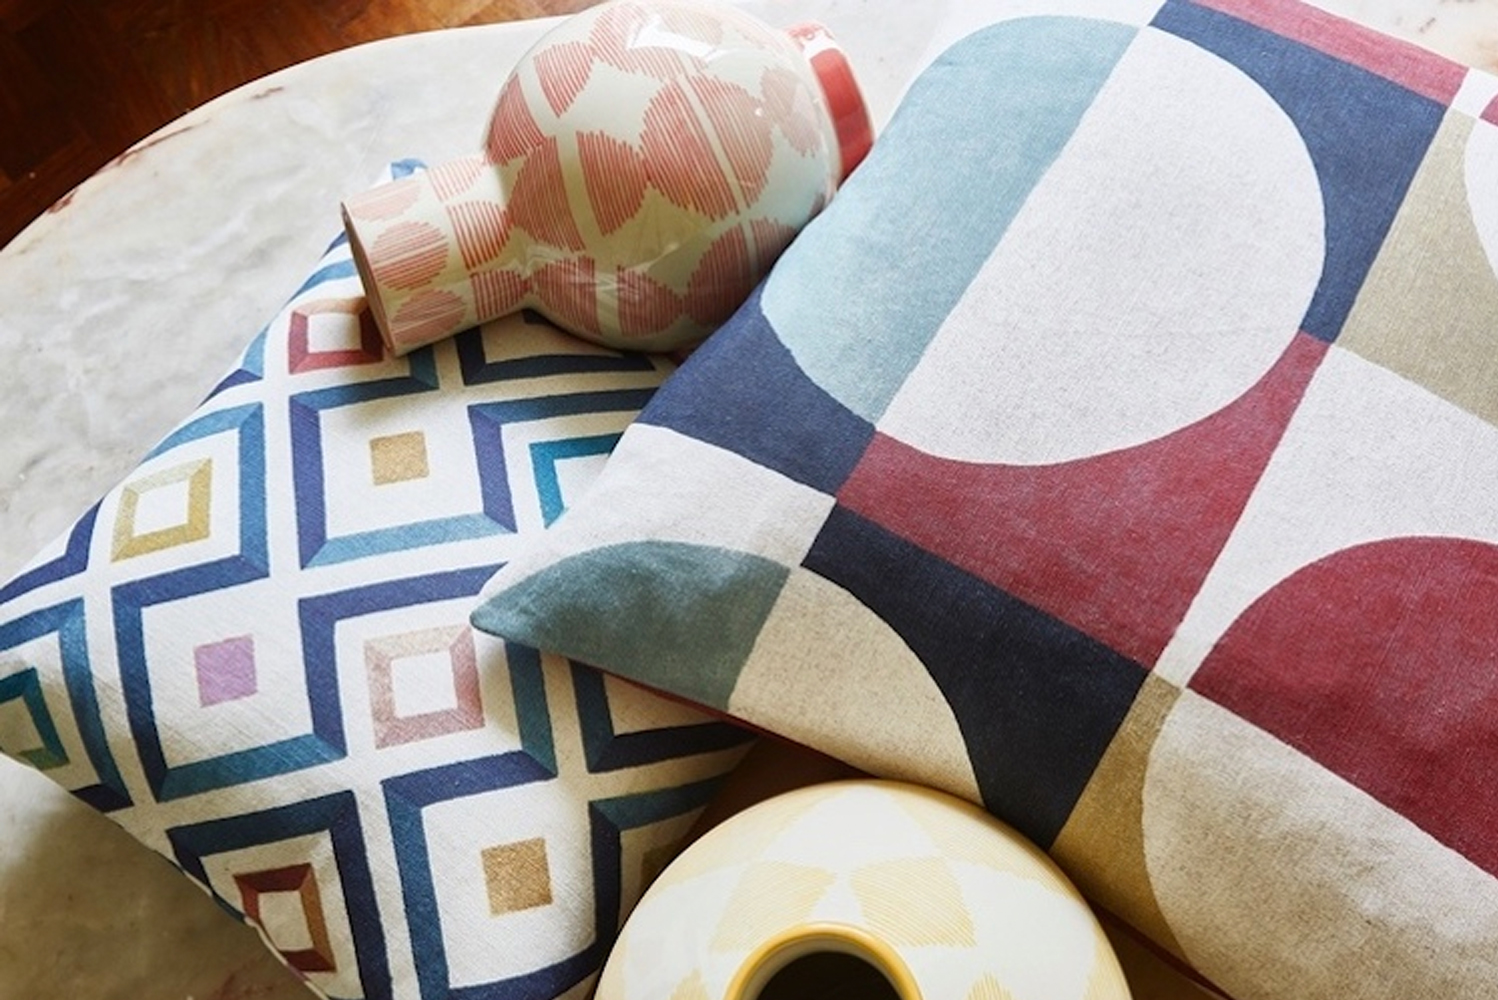 U.K.-based textile firm Prestigious Textiles launched the Abstract collection.